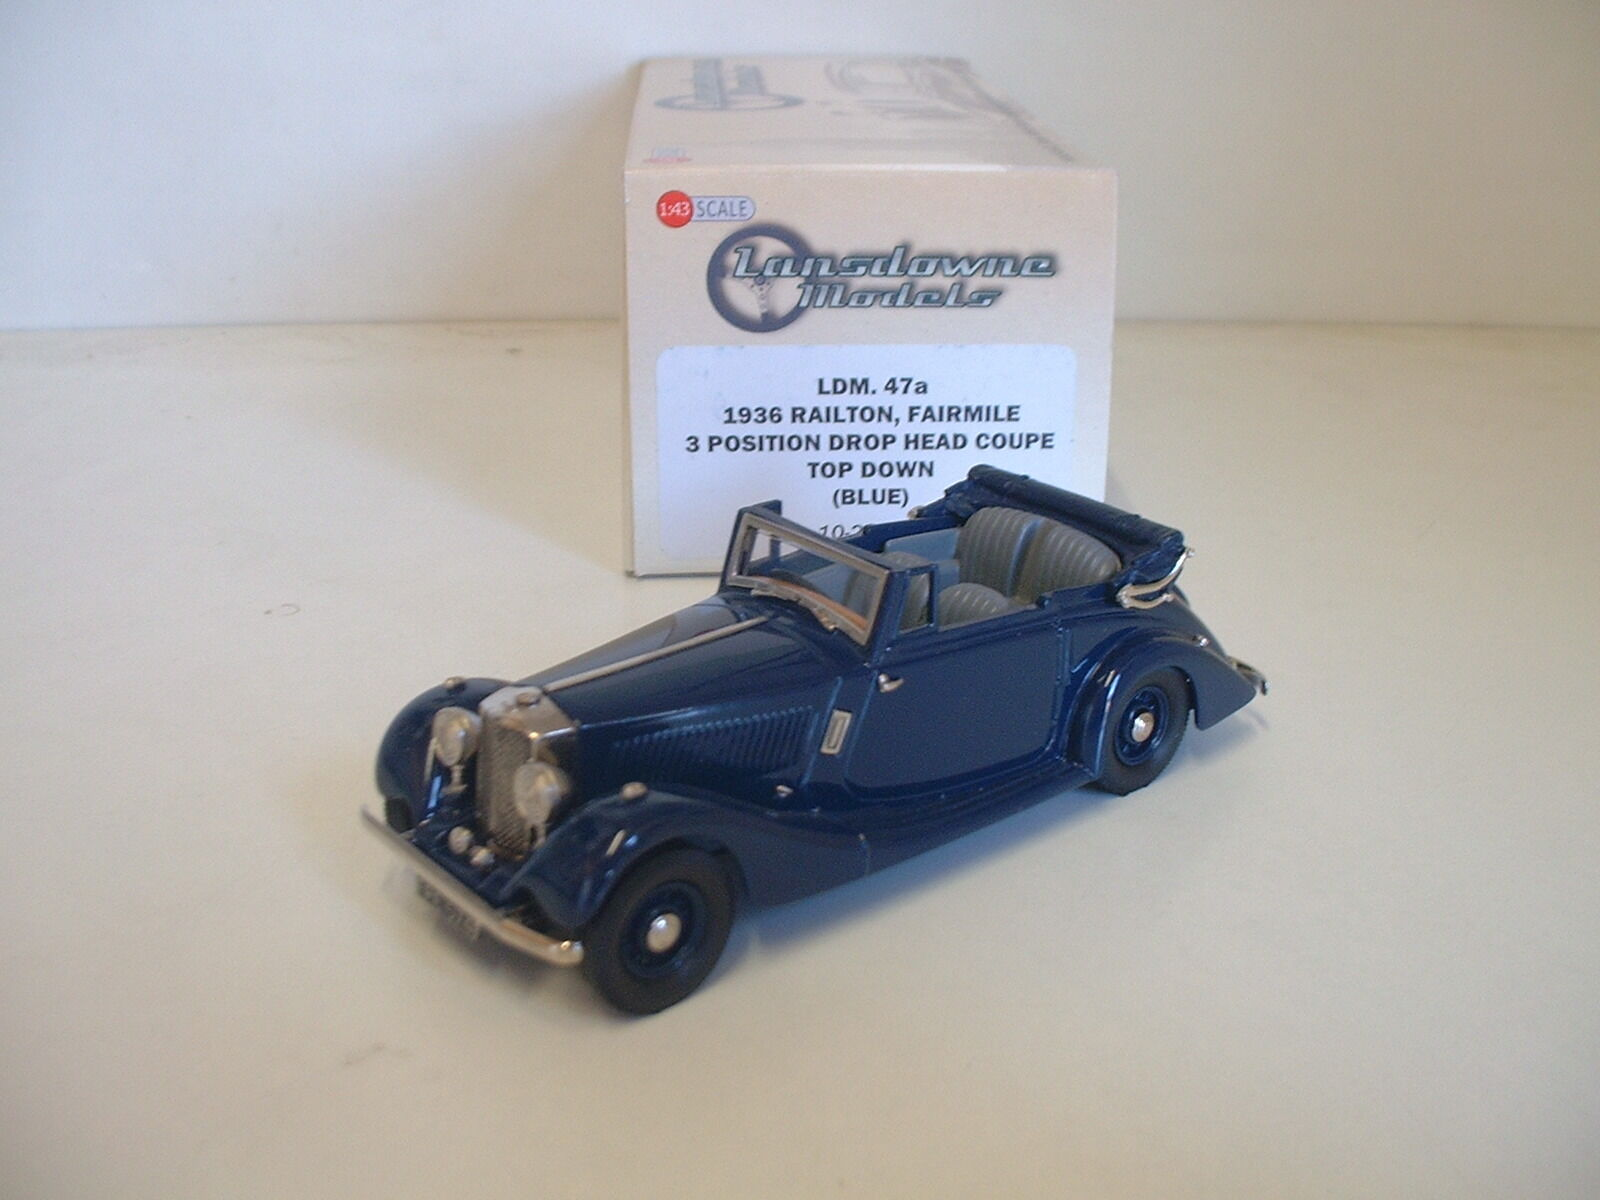 Railton Fairmile 3 position drop head coupe top down 1936 bluee (1 43, Lansdowne)